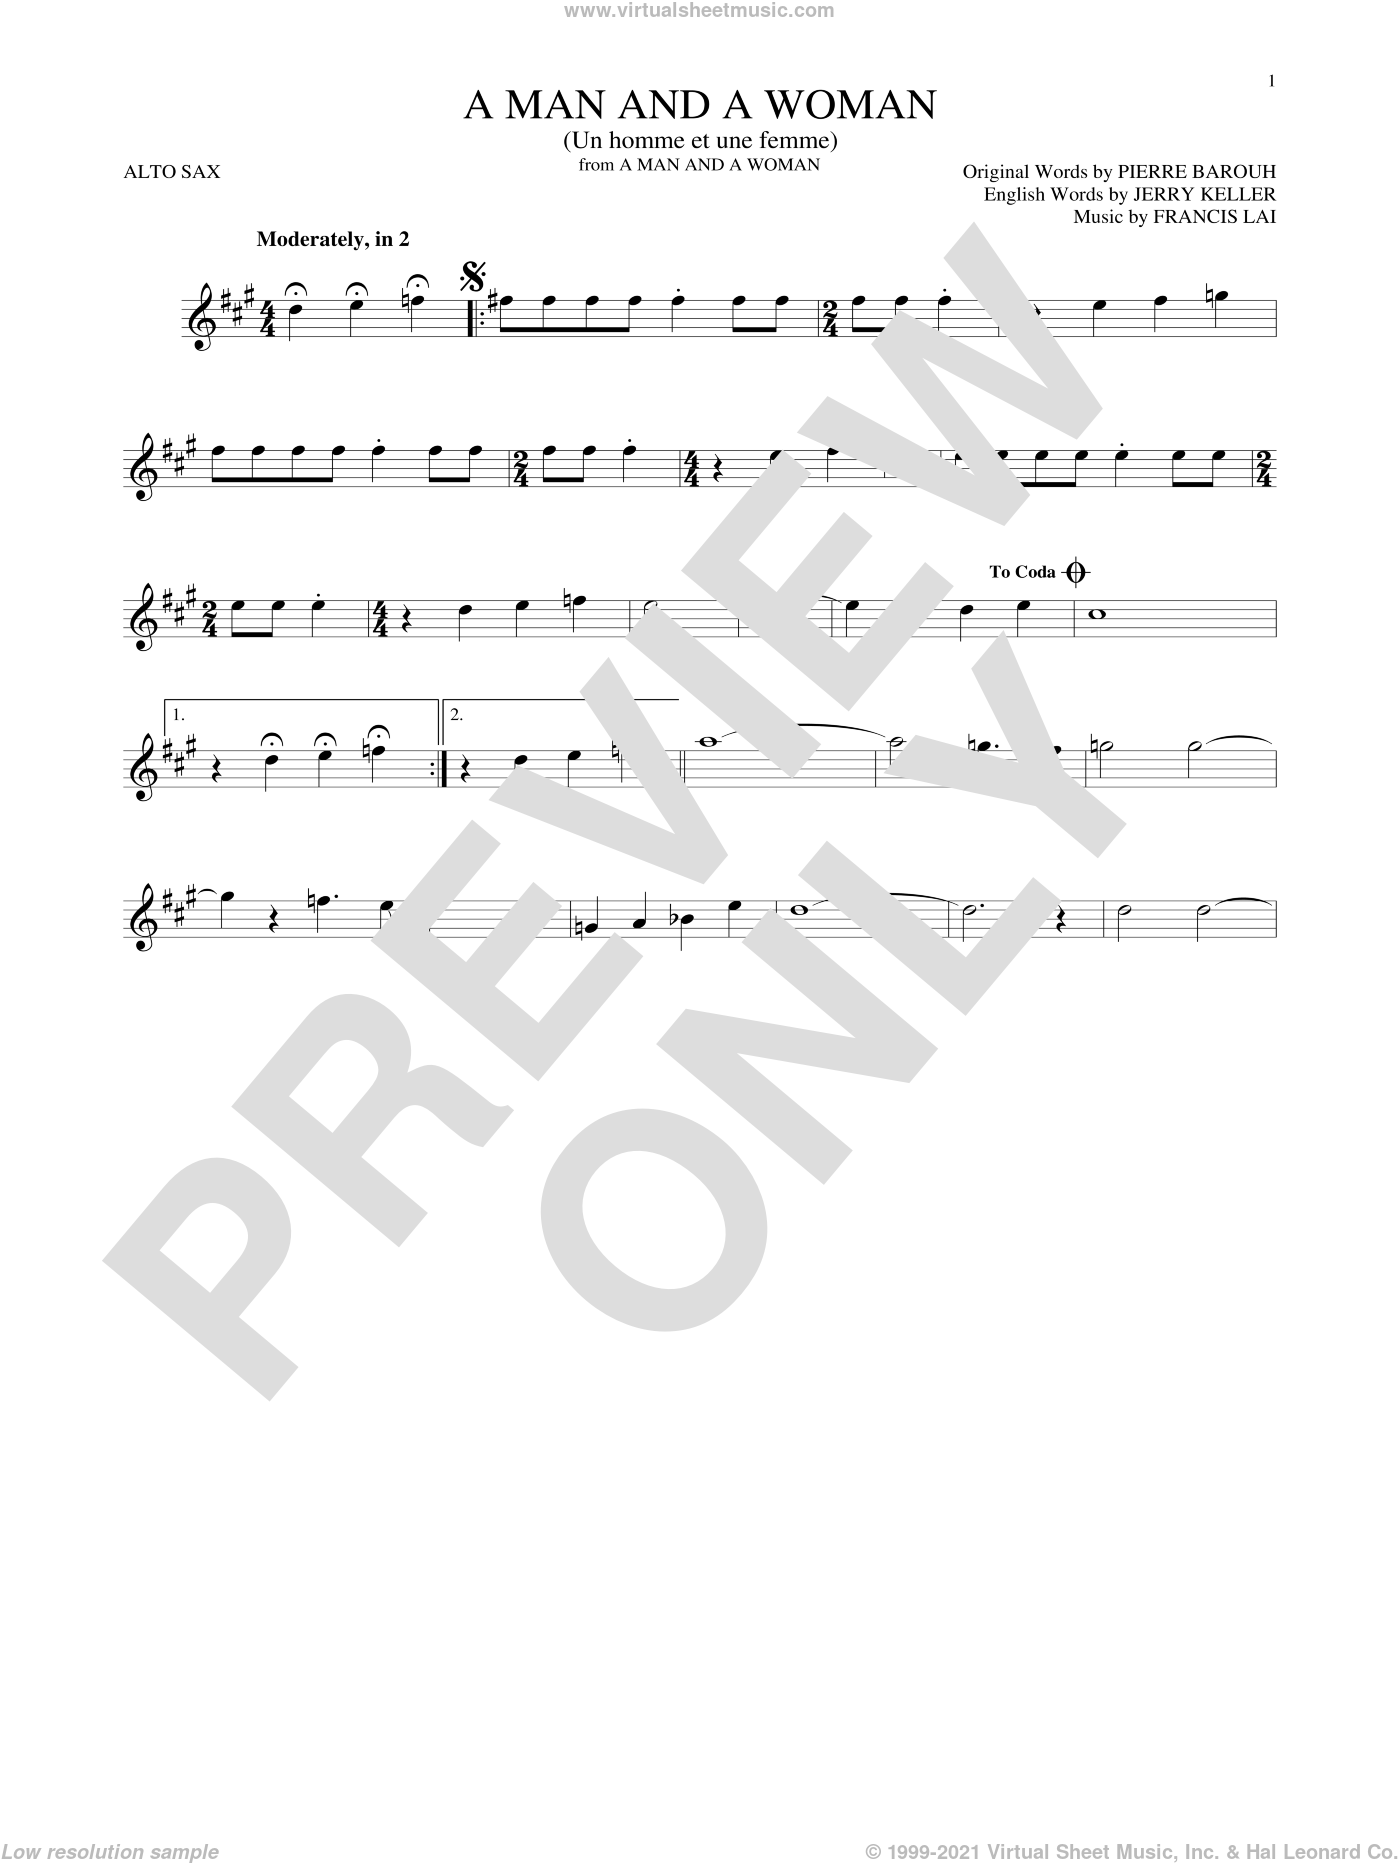 A Man And A Woman (Un Homme Et Une Femme) sheet music for alto saxophone solo by Herbie Mann and Tamiko Jones, Francis Lai, Jerry Keller and Pierre Barouh, intermediate skill level